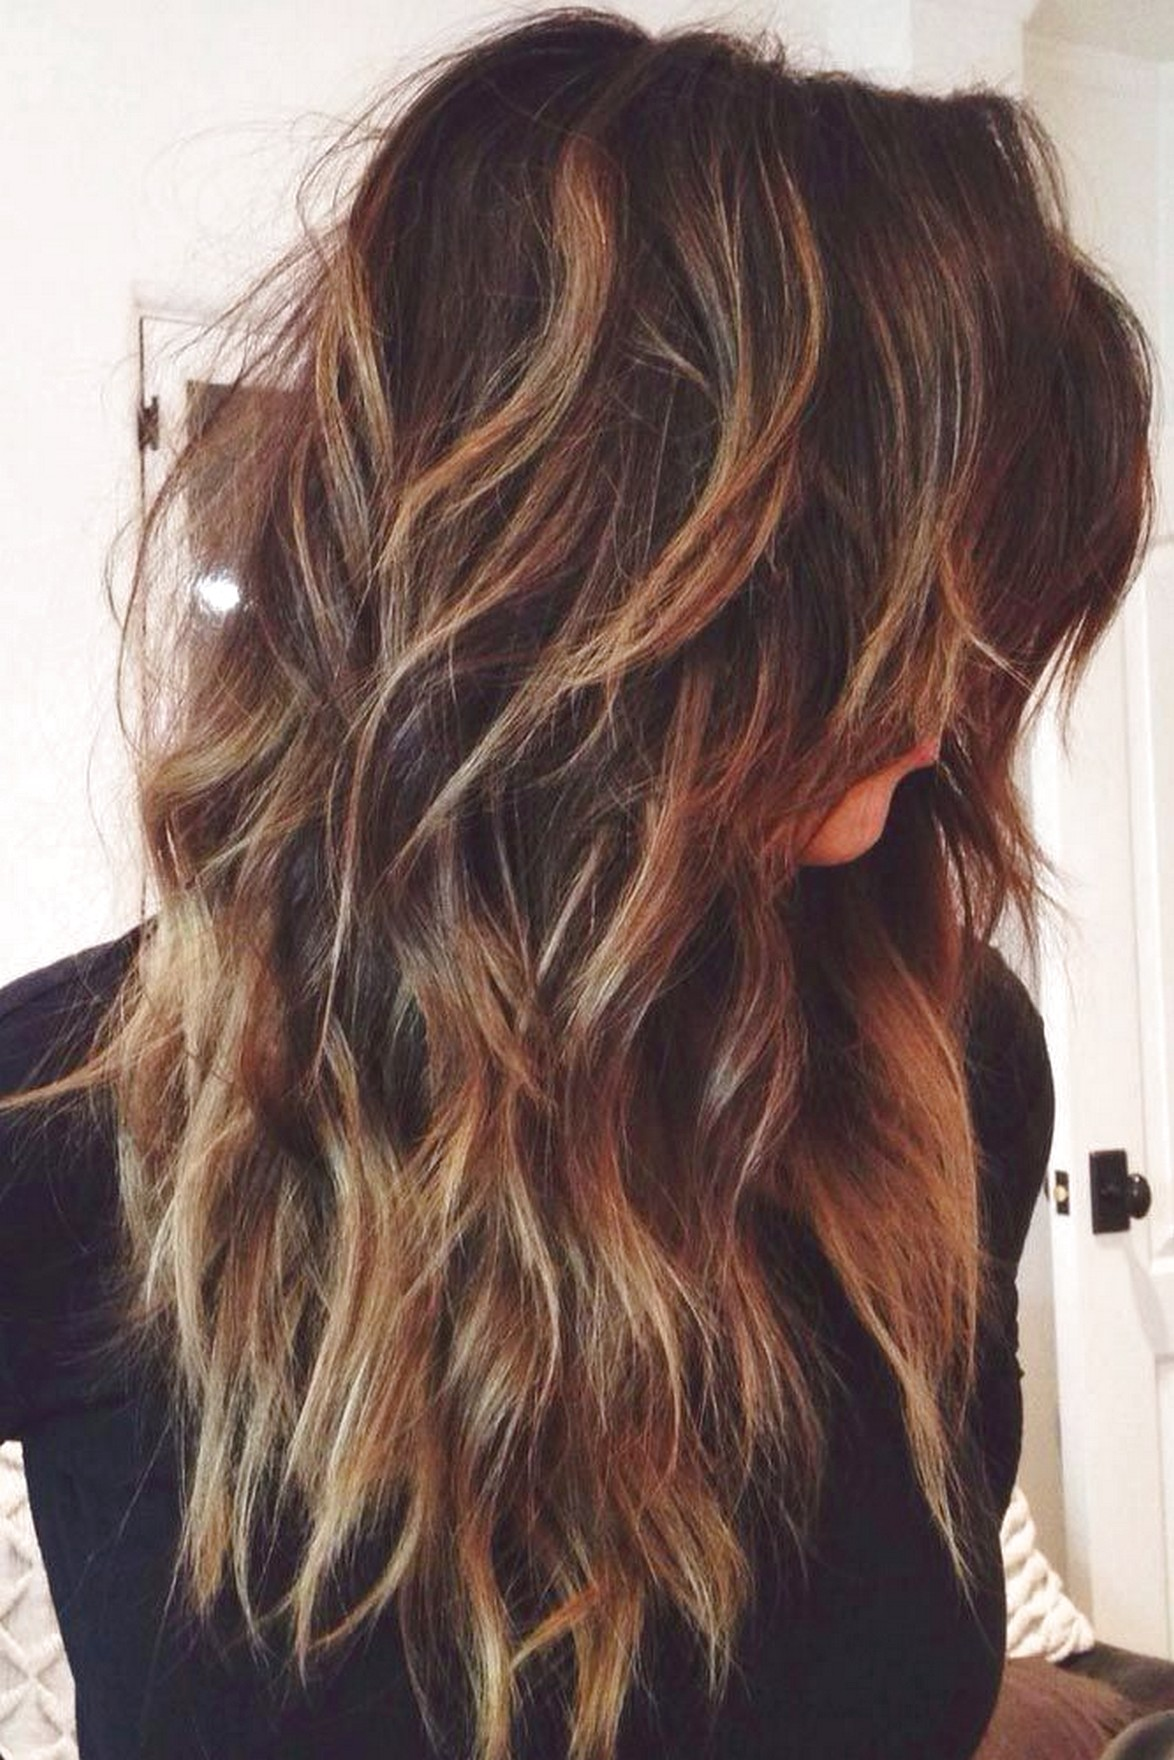 The Simple Way To Style Long Hair Lots Of Layers Nextculture